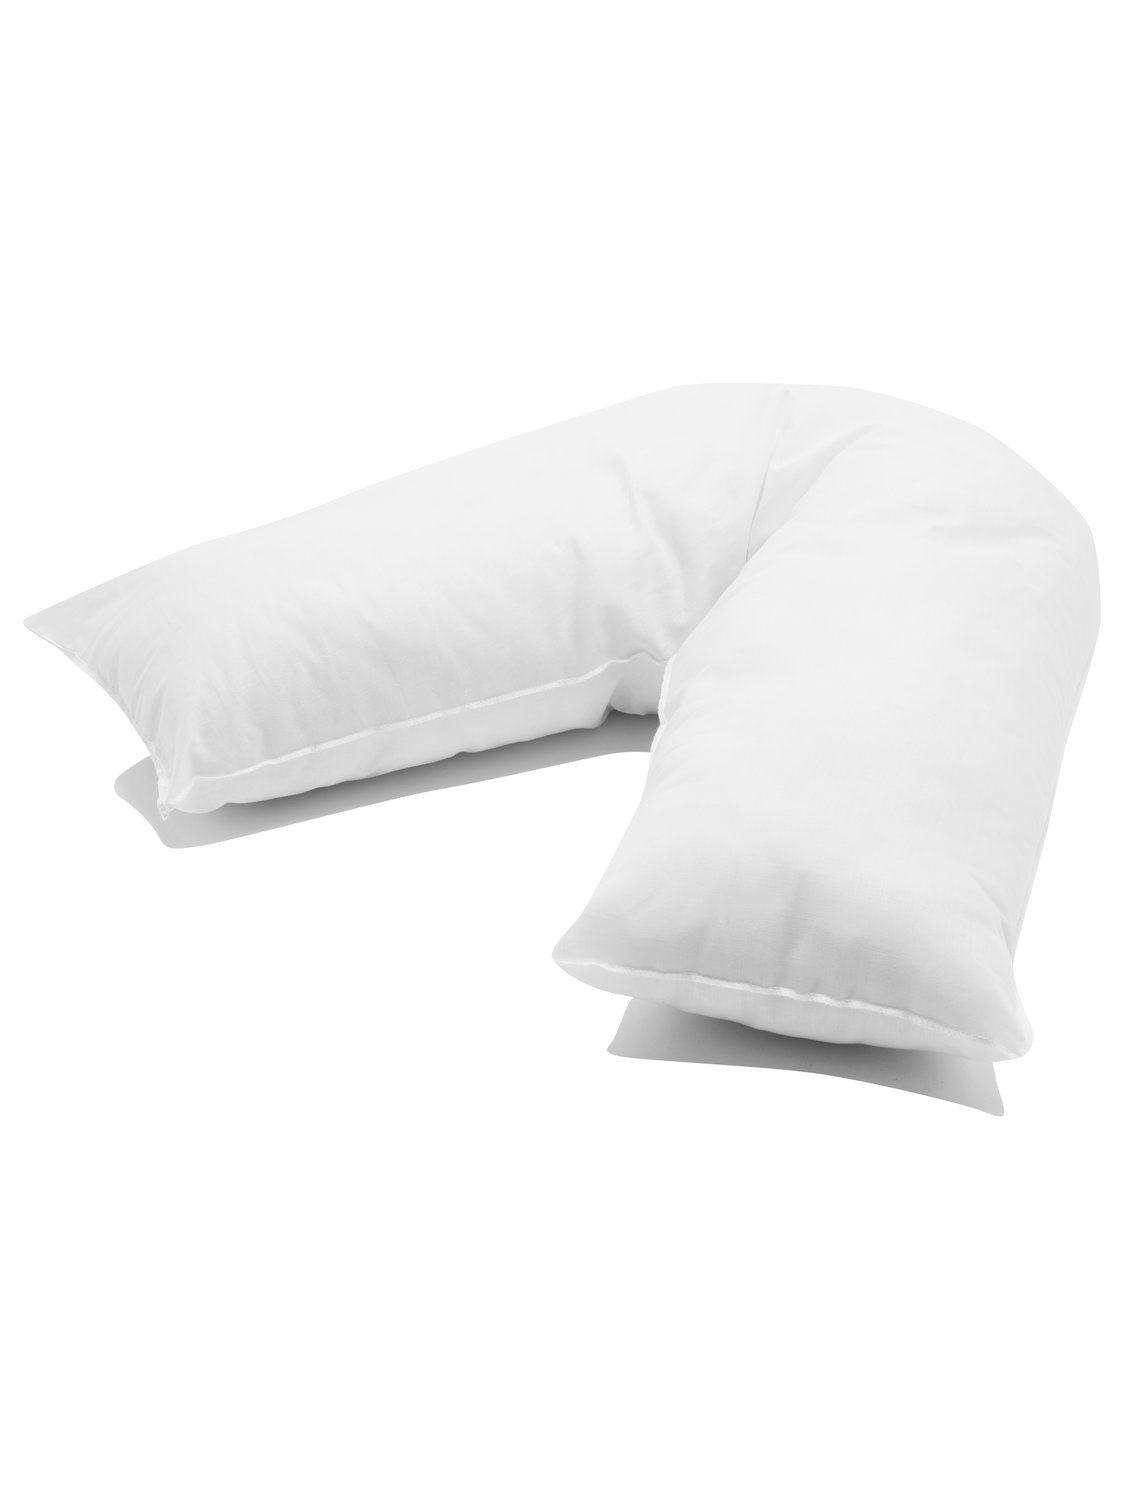 Image of Homeware hollowfibre v shape firm support pillow - White